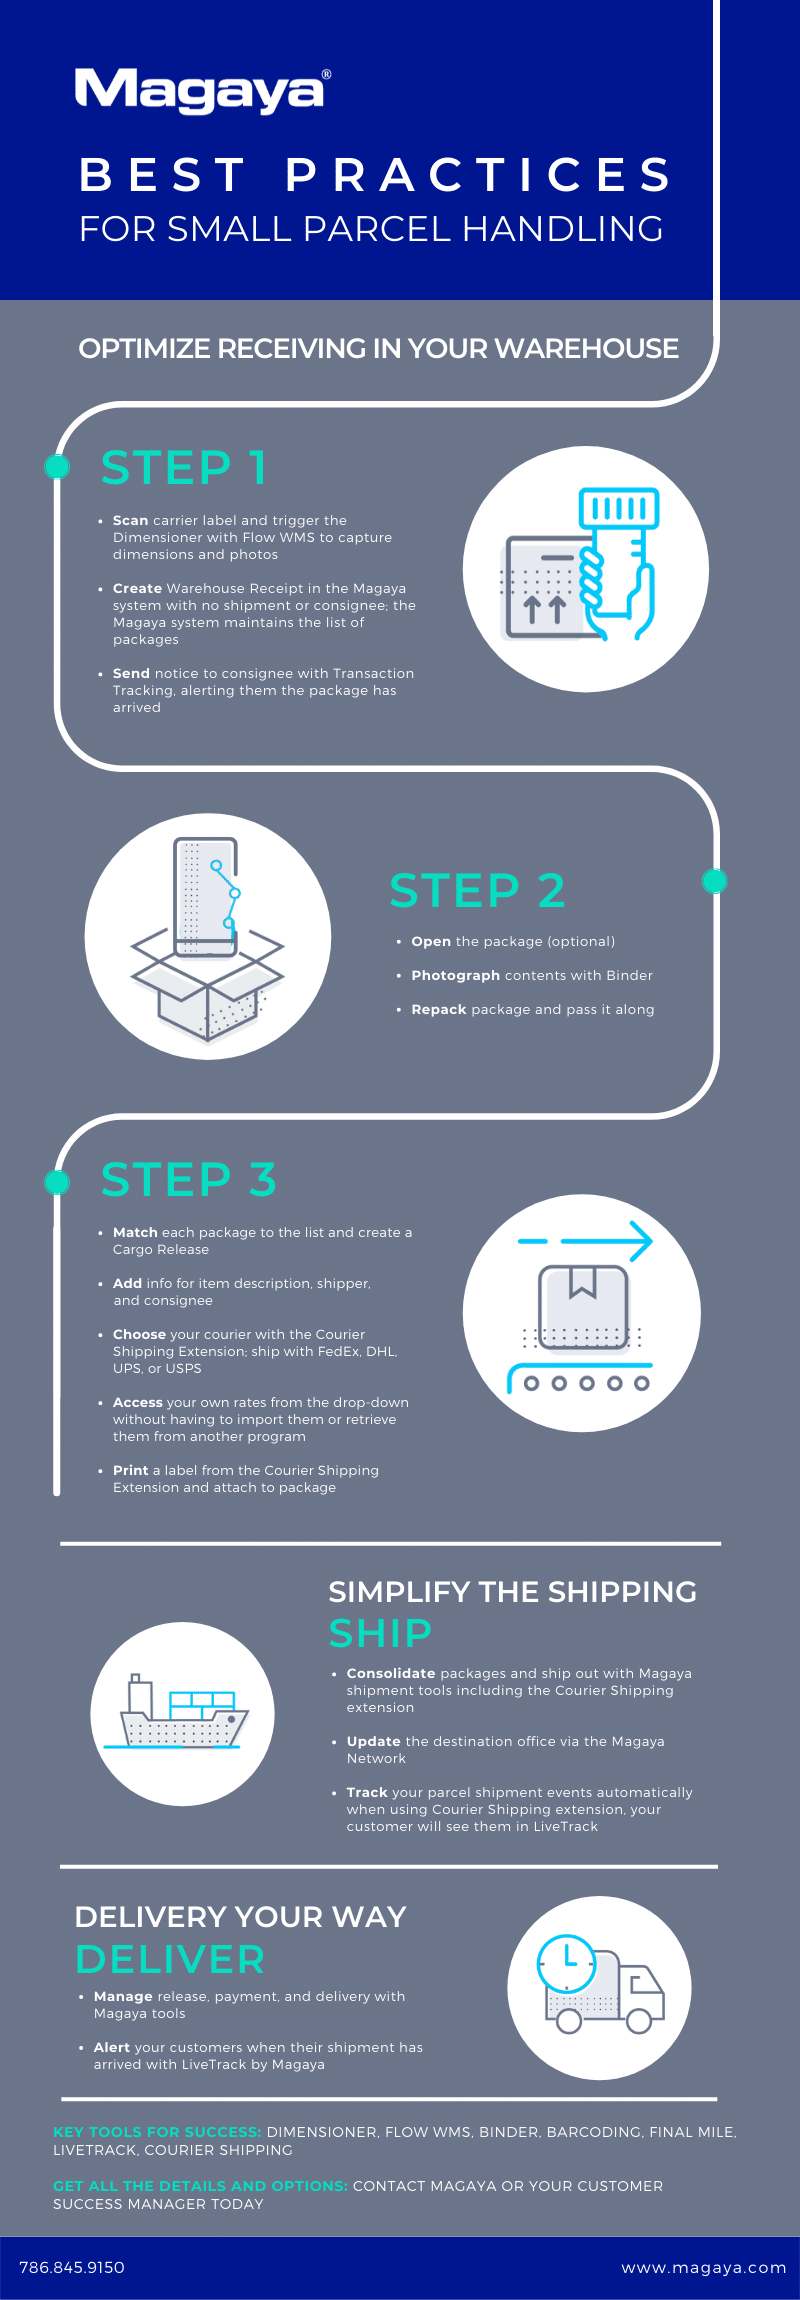 Small Parcel Handling Best Practices Infographic